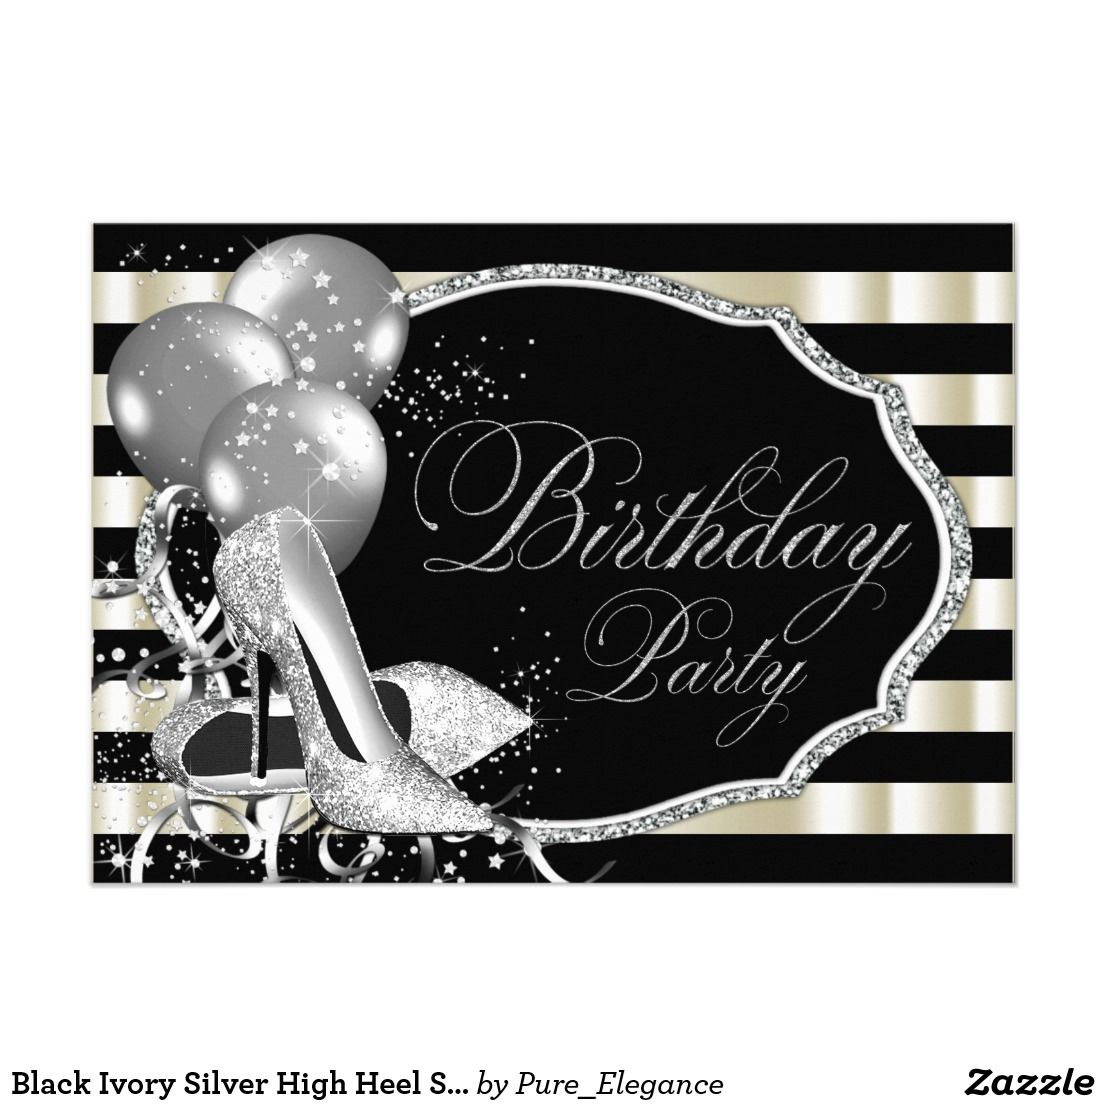 Black Ivory Silver High Heel Shoe Birthday Party Card | Silver high ...